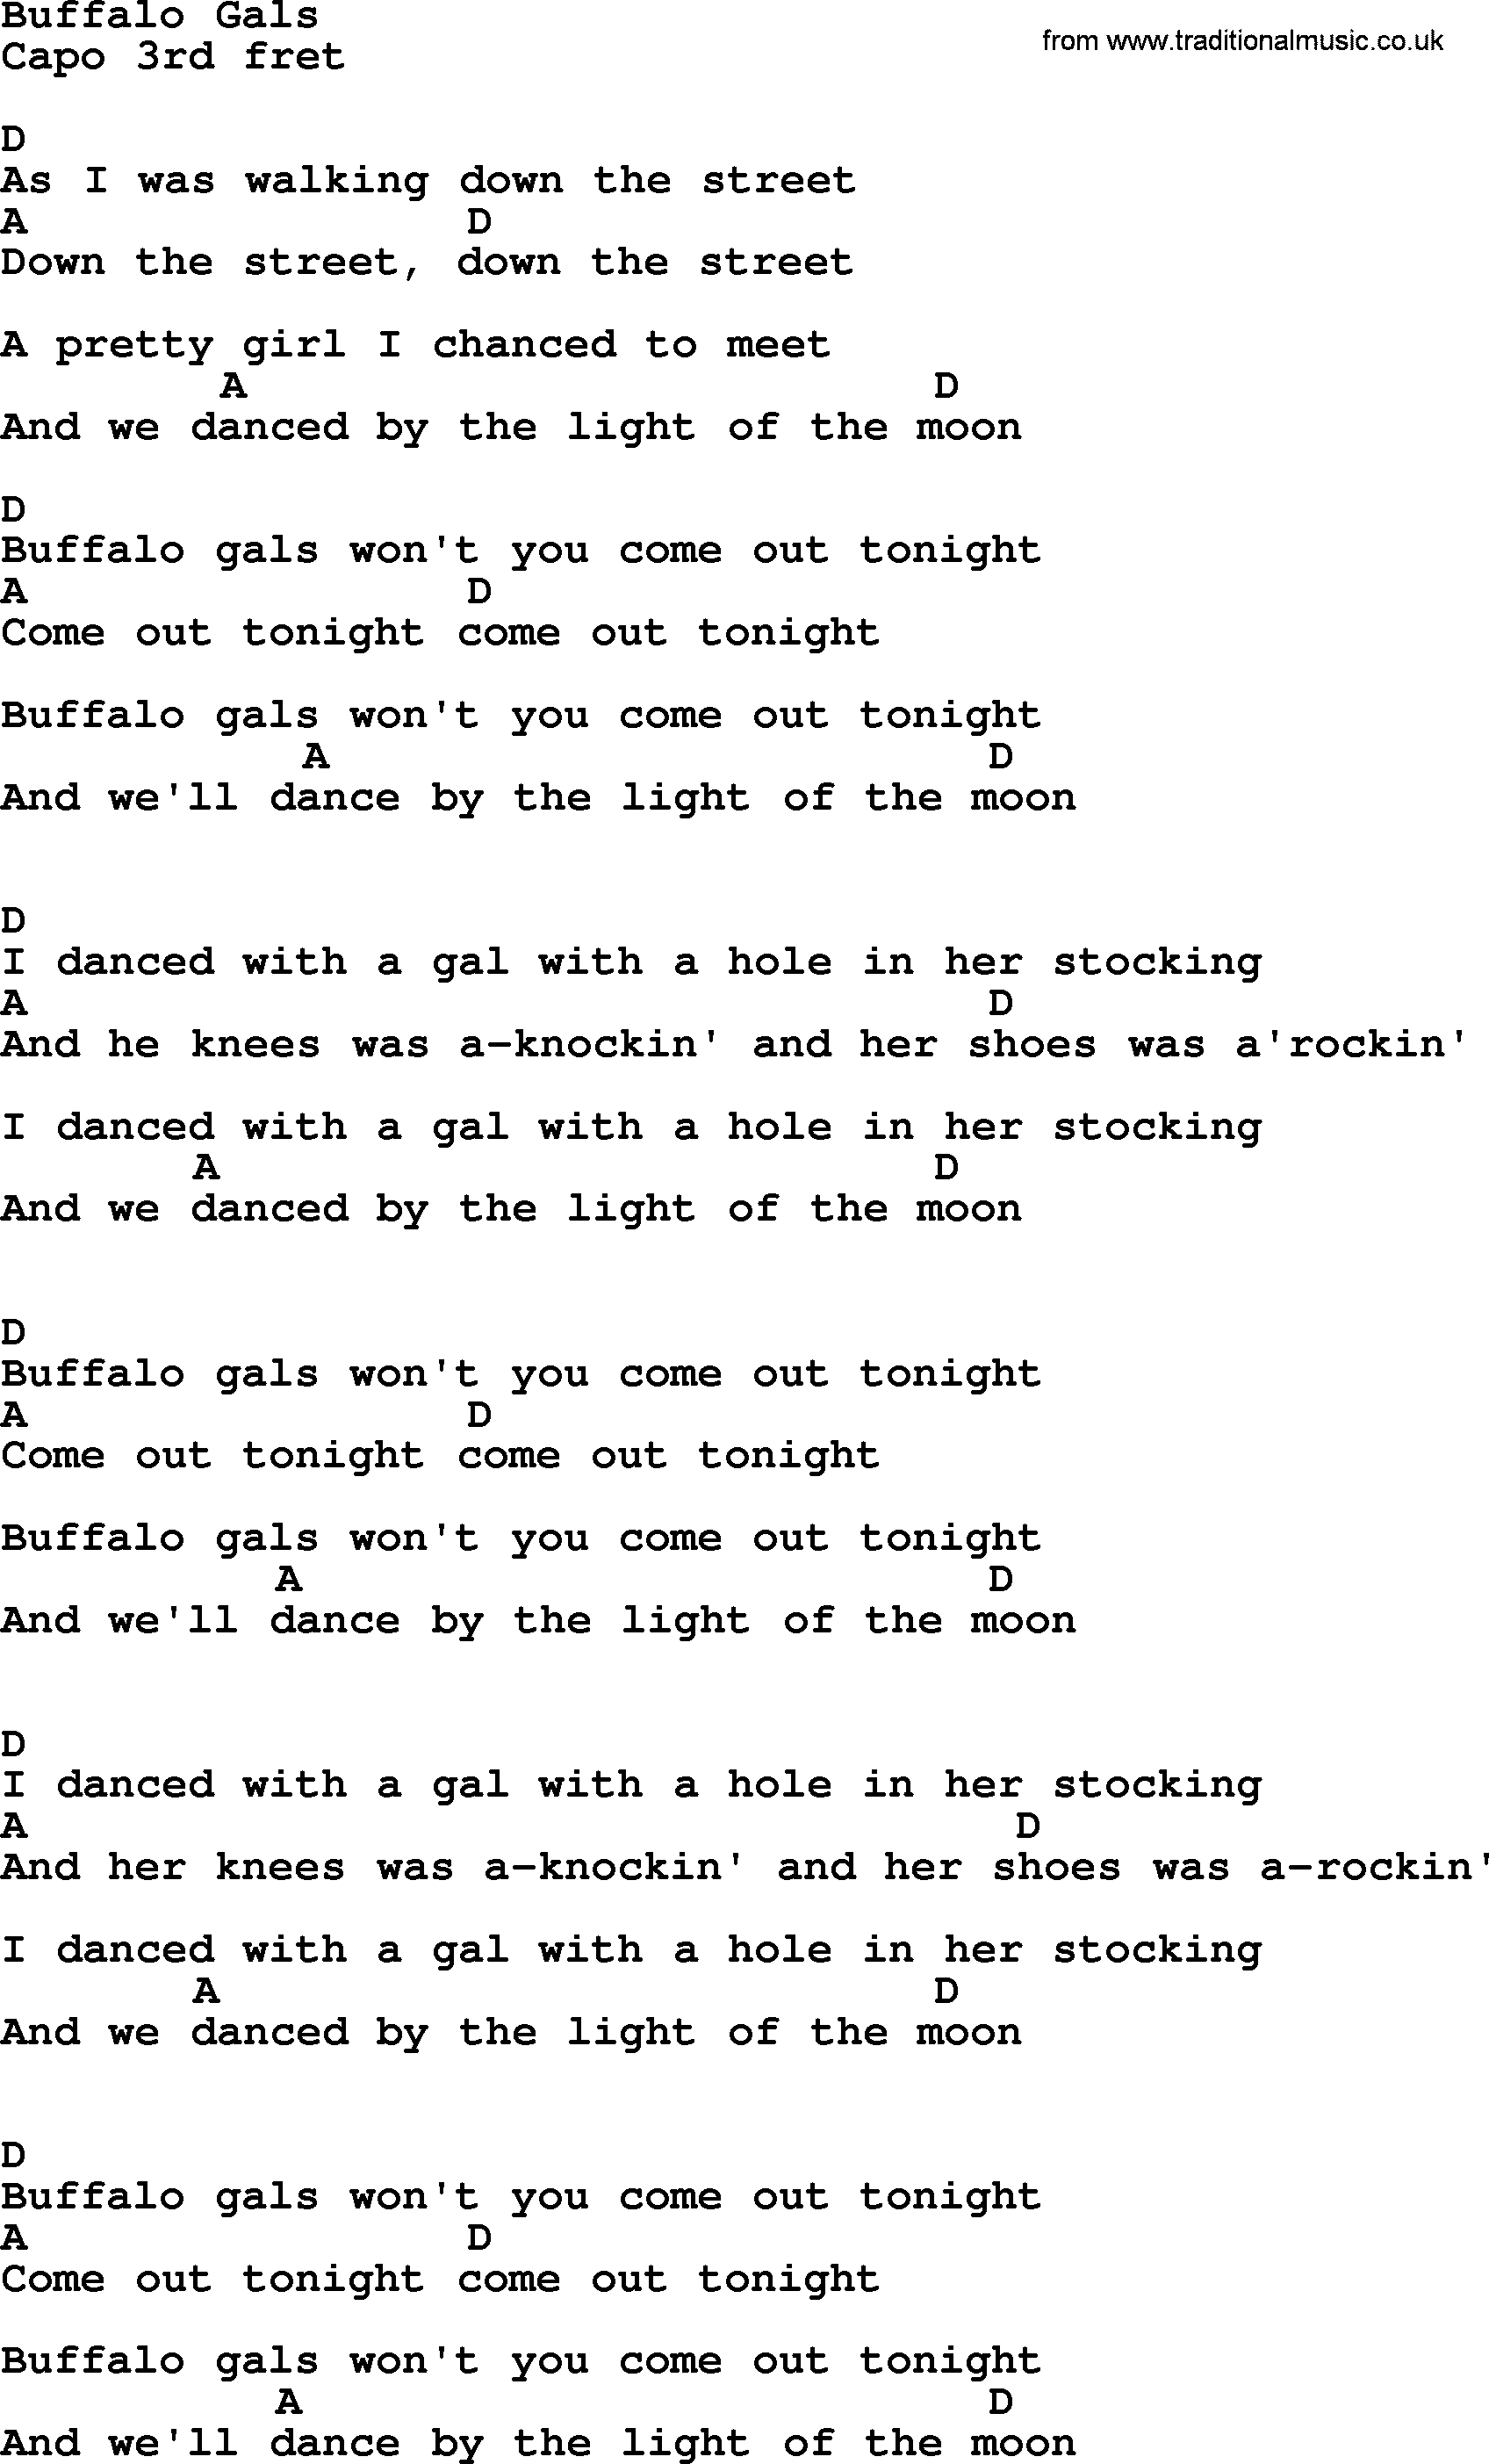 Bruce Springsteen Song Buffalo Gals Lyrics And Chords